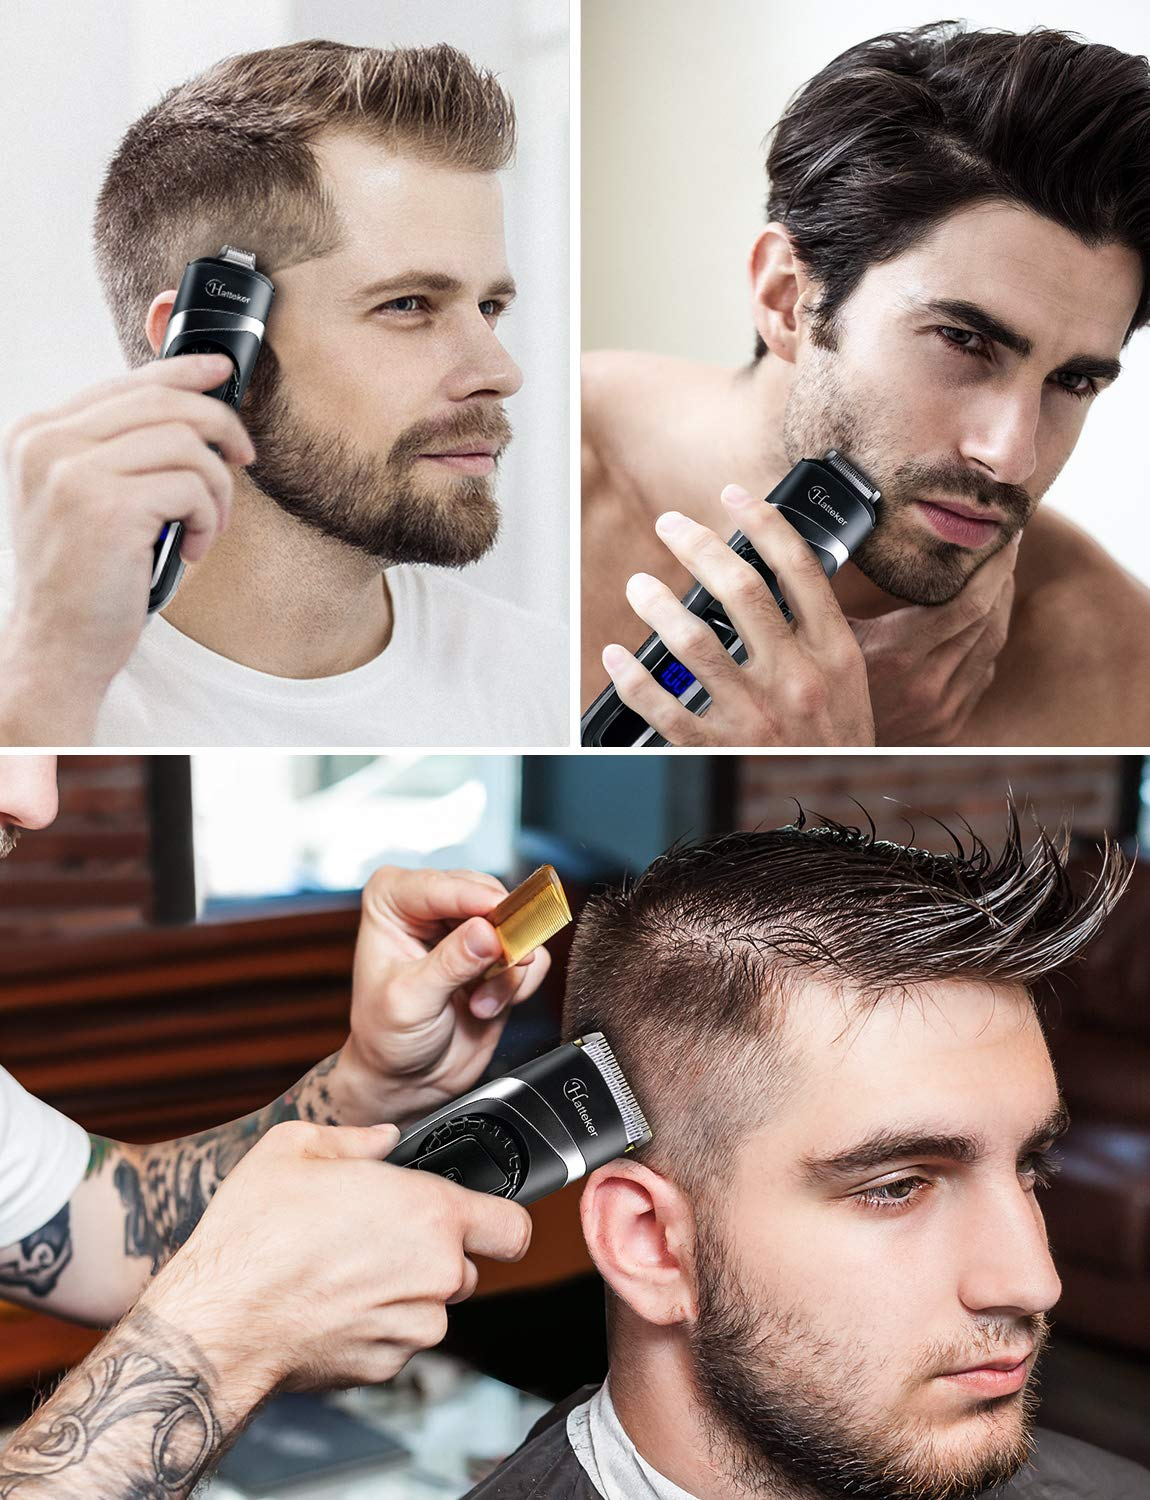 3 In 1 Men's Beard Trimmer & Hair Cutting Kit, Cordless Waterproof Hair Trimmer Kit